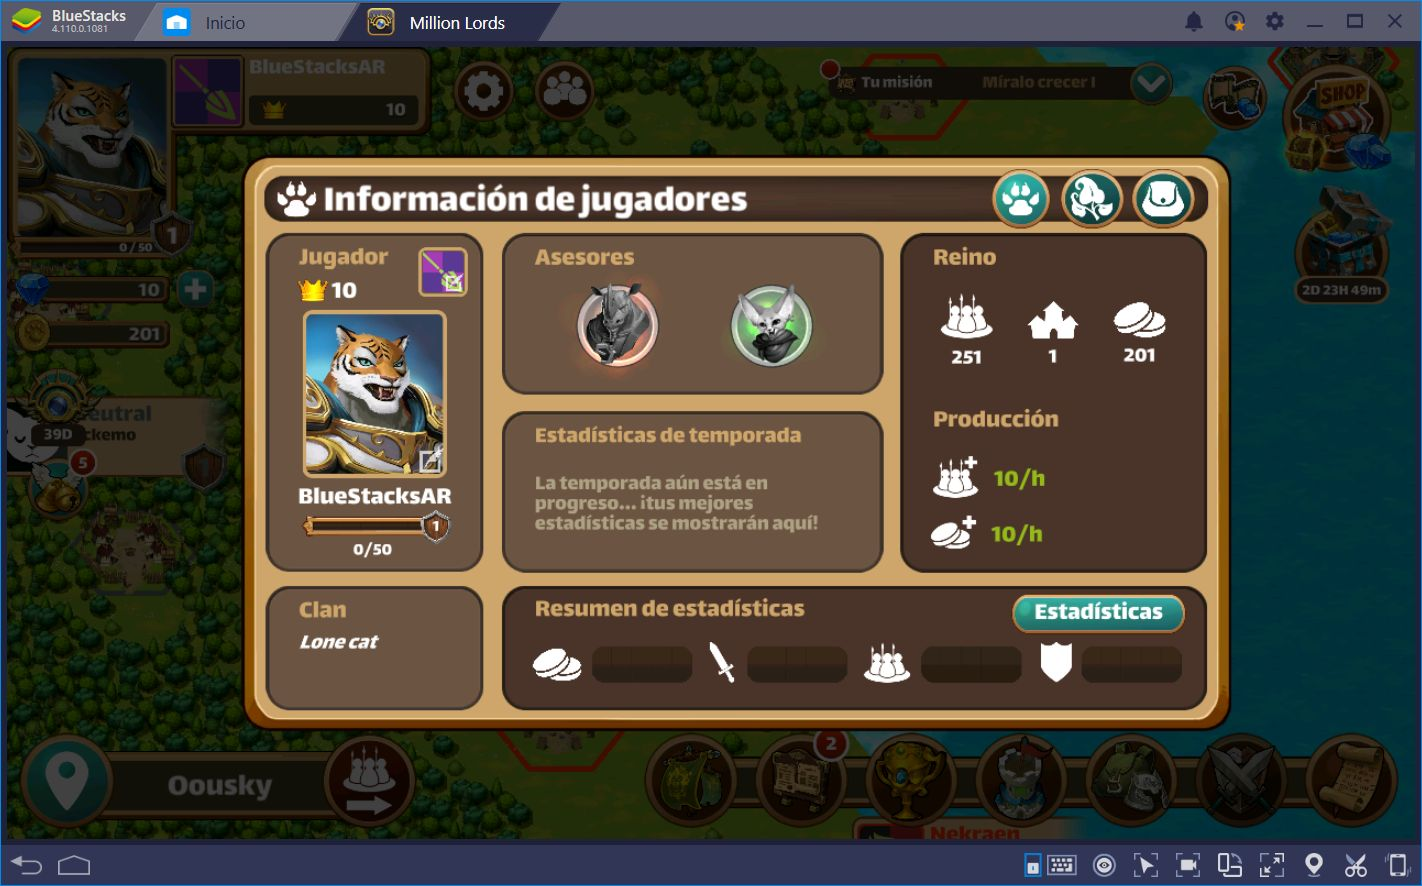 Million Lords en BlueStacks: Jugabilidad de Estrategia, Simplificada